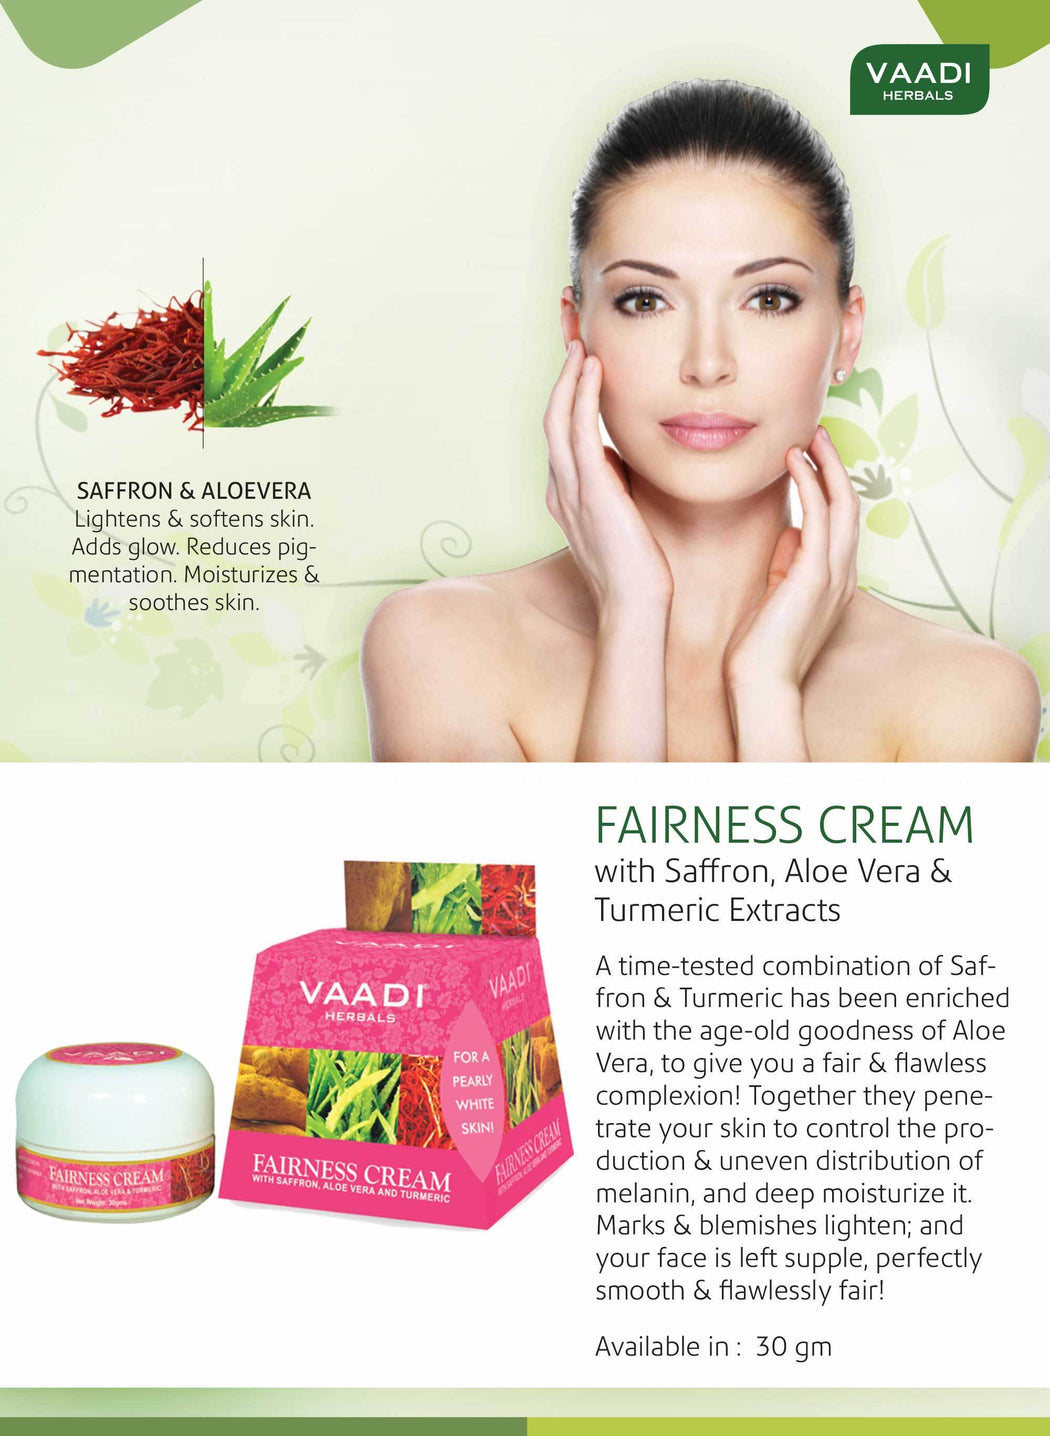 Organic Fairness Cream with Saffron, Aloe Vera & Turmeric Extract - Lightens Marks & Blemishes - Makes Skin Flawless (30 gms / 1.1 oz)